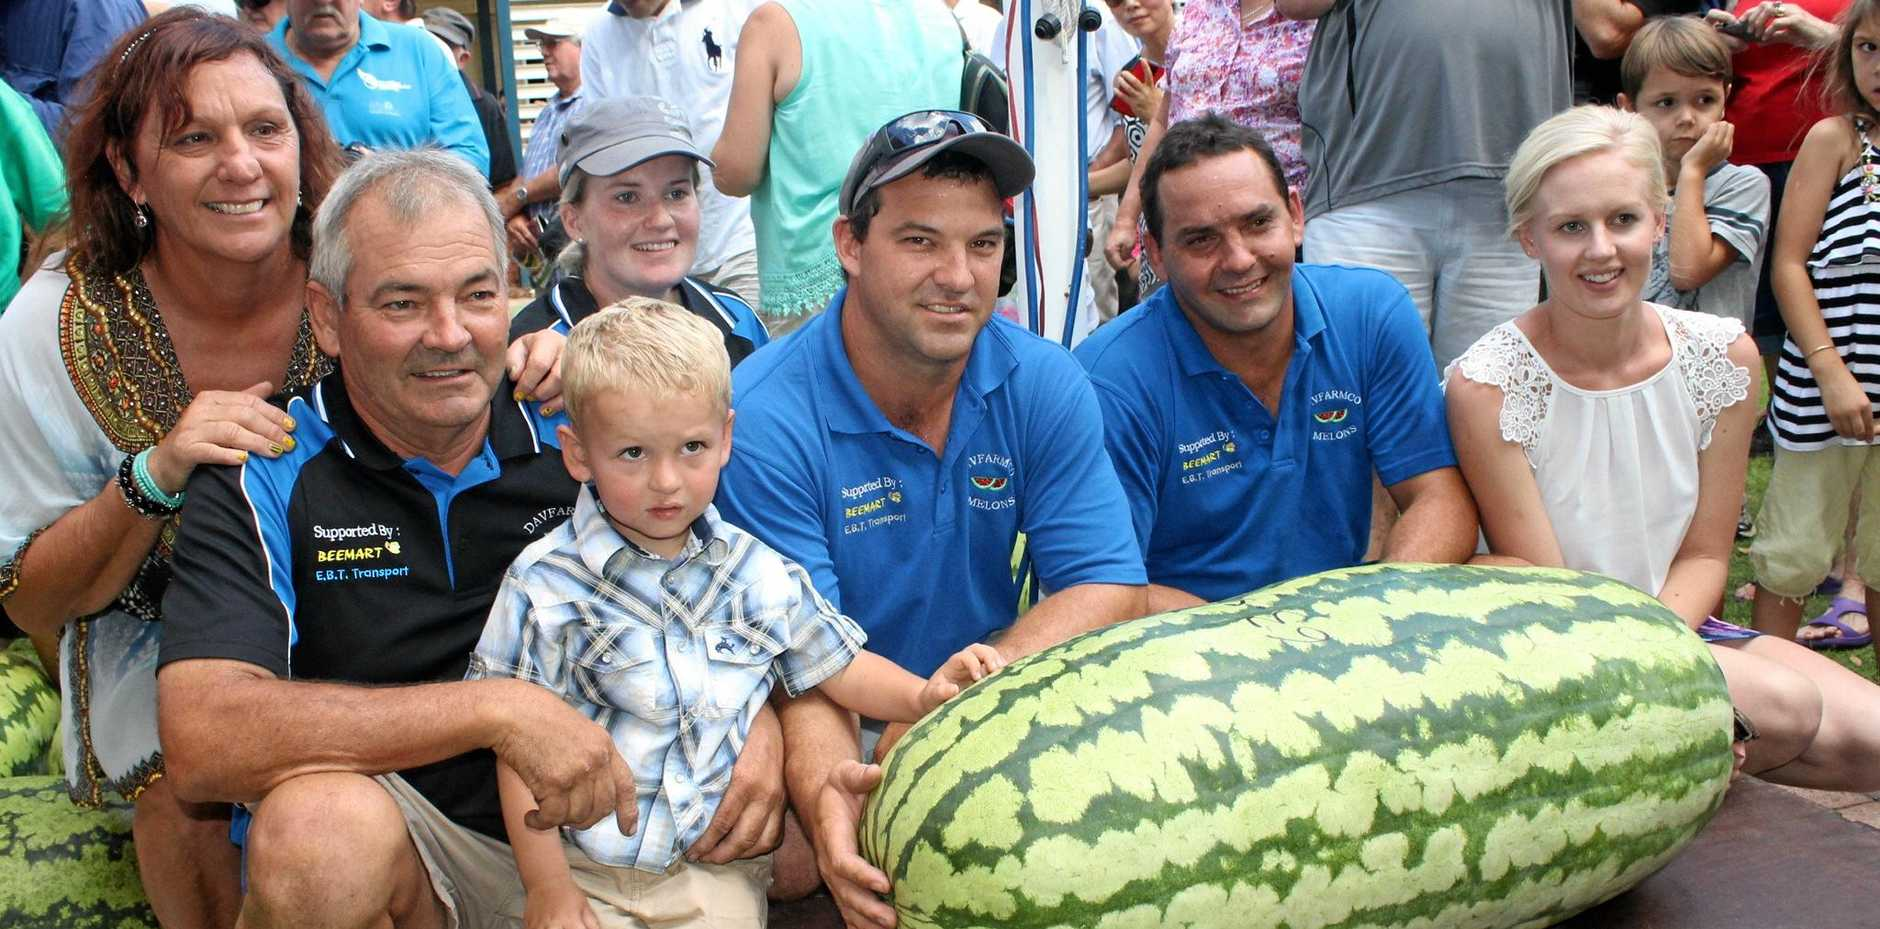 STRAIGHT TO THE POOLROOM: The Davies family were the winners of the 2015 Melon Festival Weigh-In with this monster which came in at 63.5kg. Pictured: Sandy, Bernie, Steph, Fletcher (in front), Chris, Matt and Nikiha Davies.